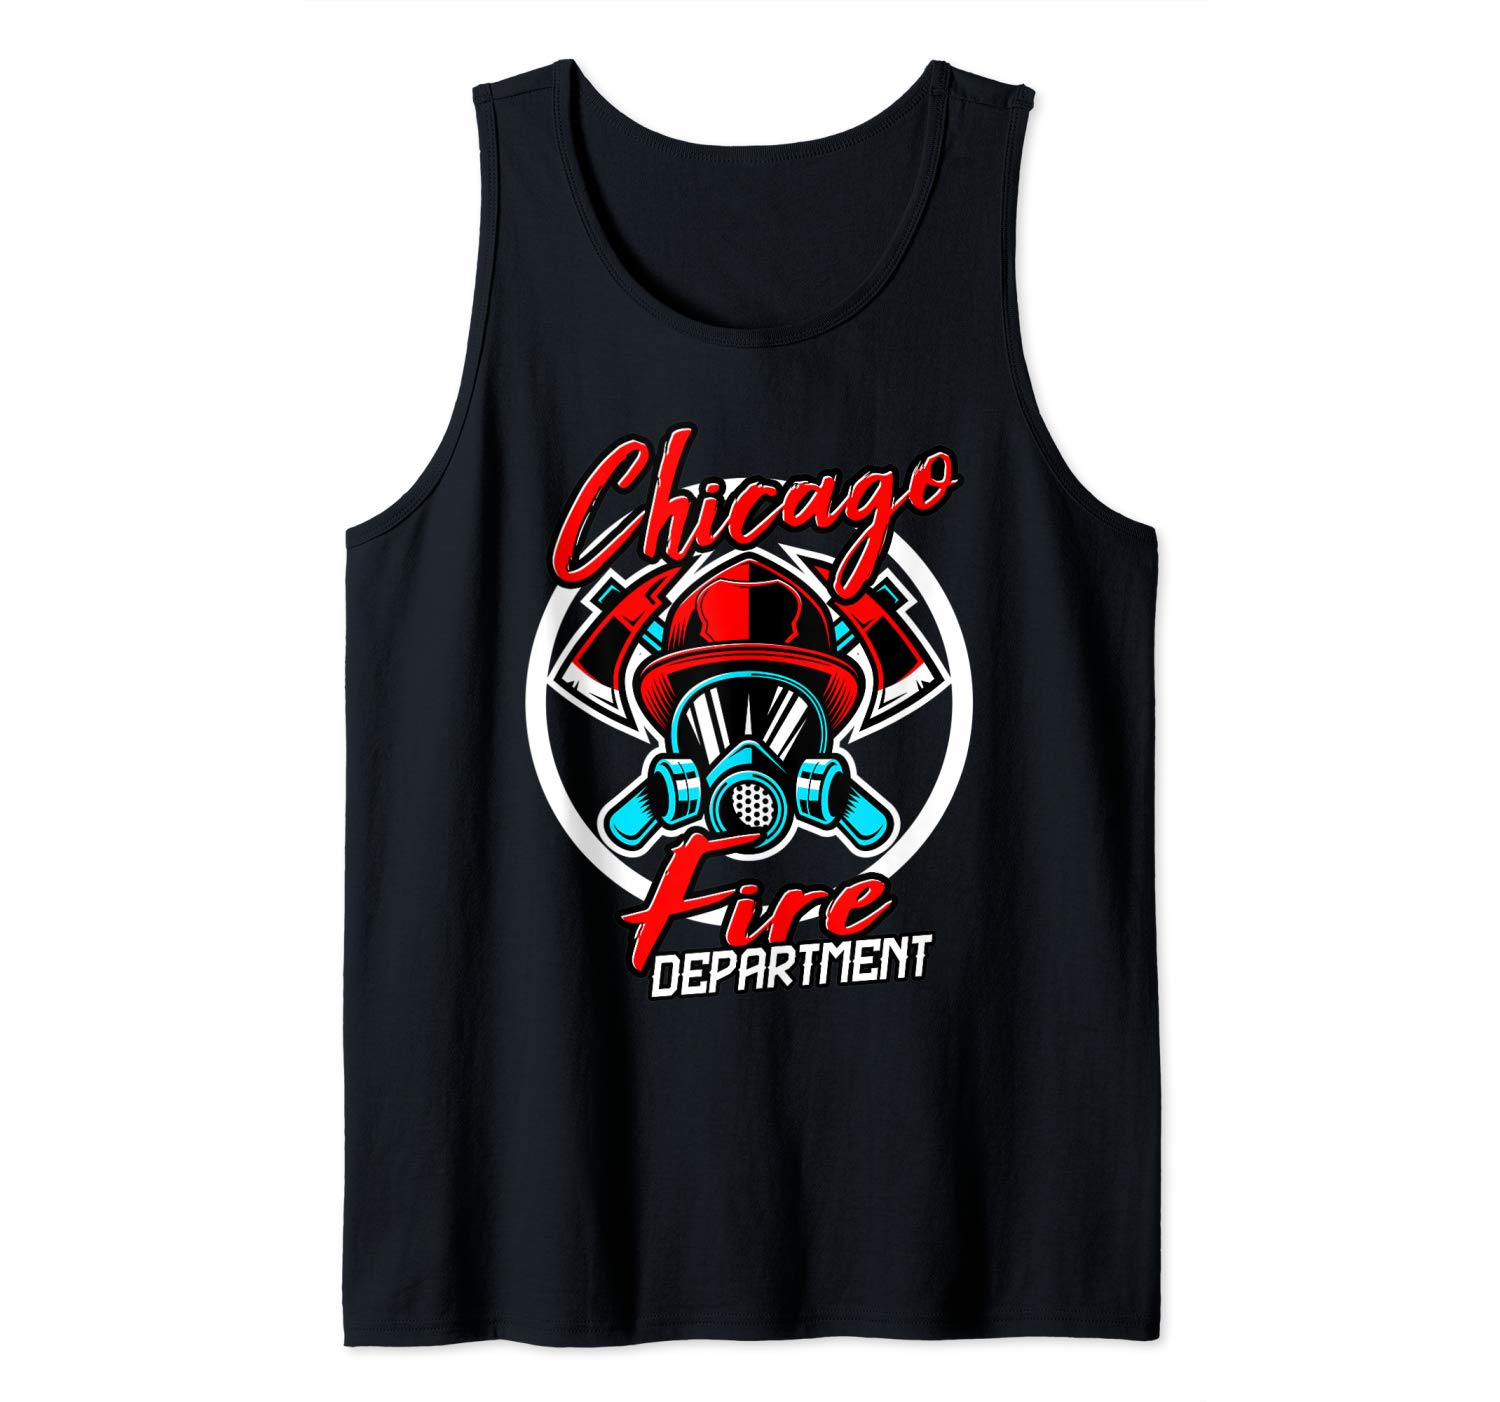 Firefighter Fire Departt Chicago Funny Station Gift Tank Top Shirts